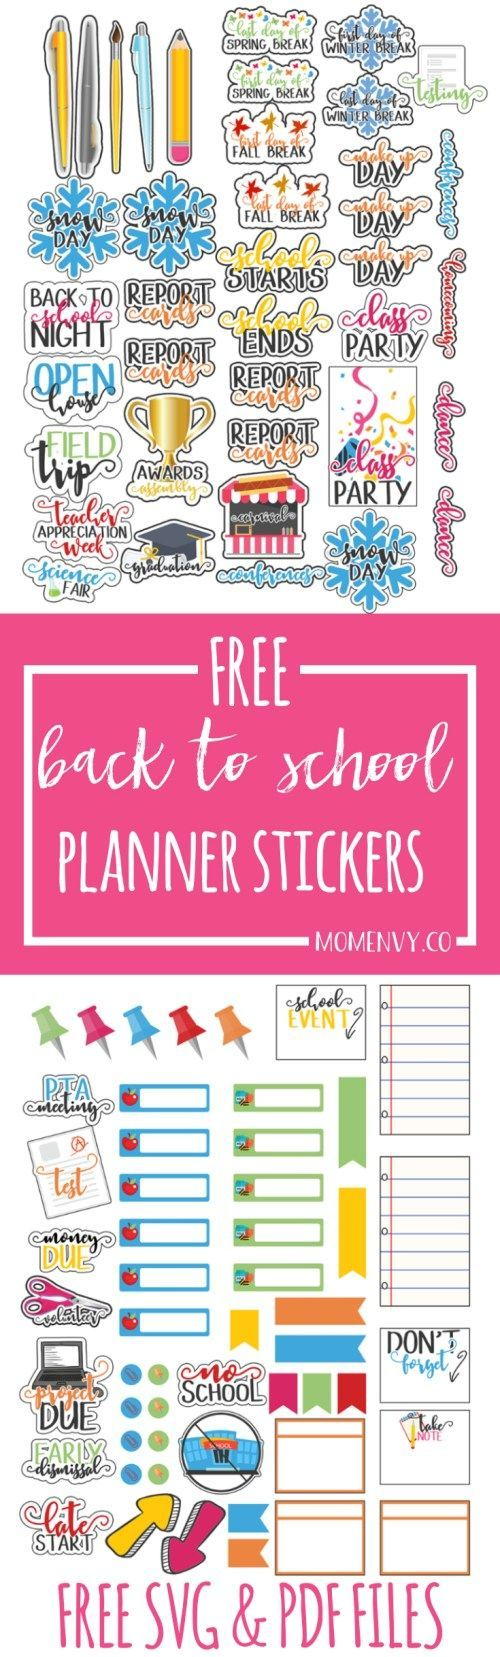 2081 best FREE Planner Stickers and Organizers images on ...